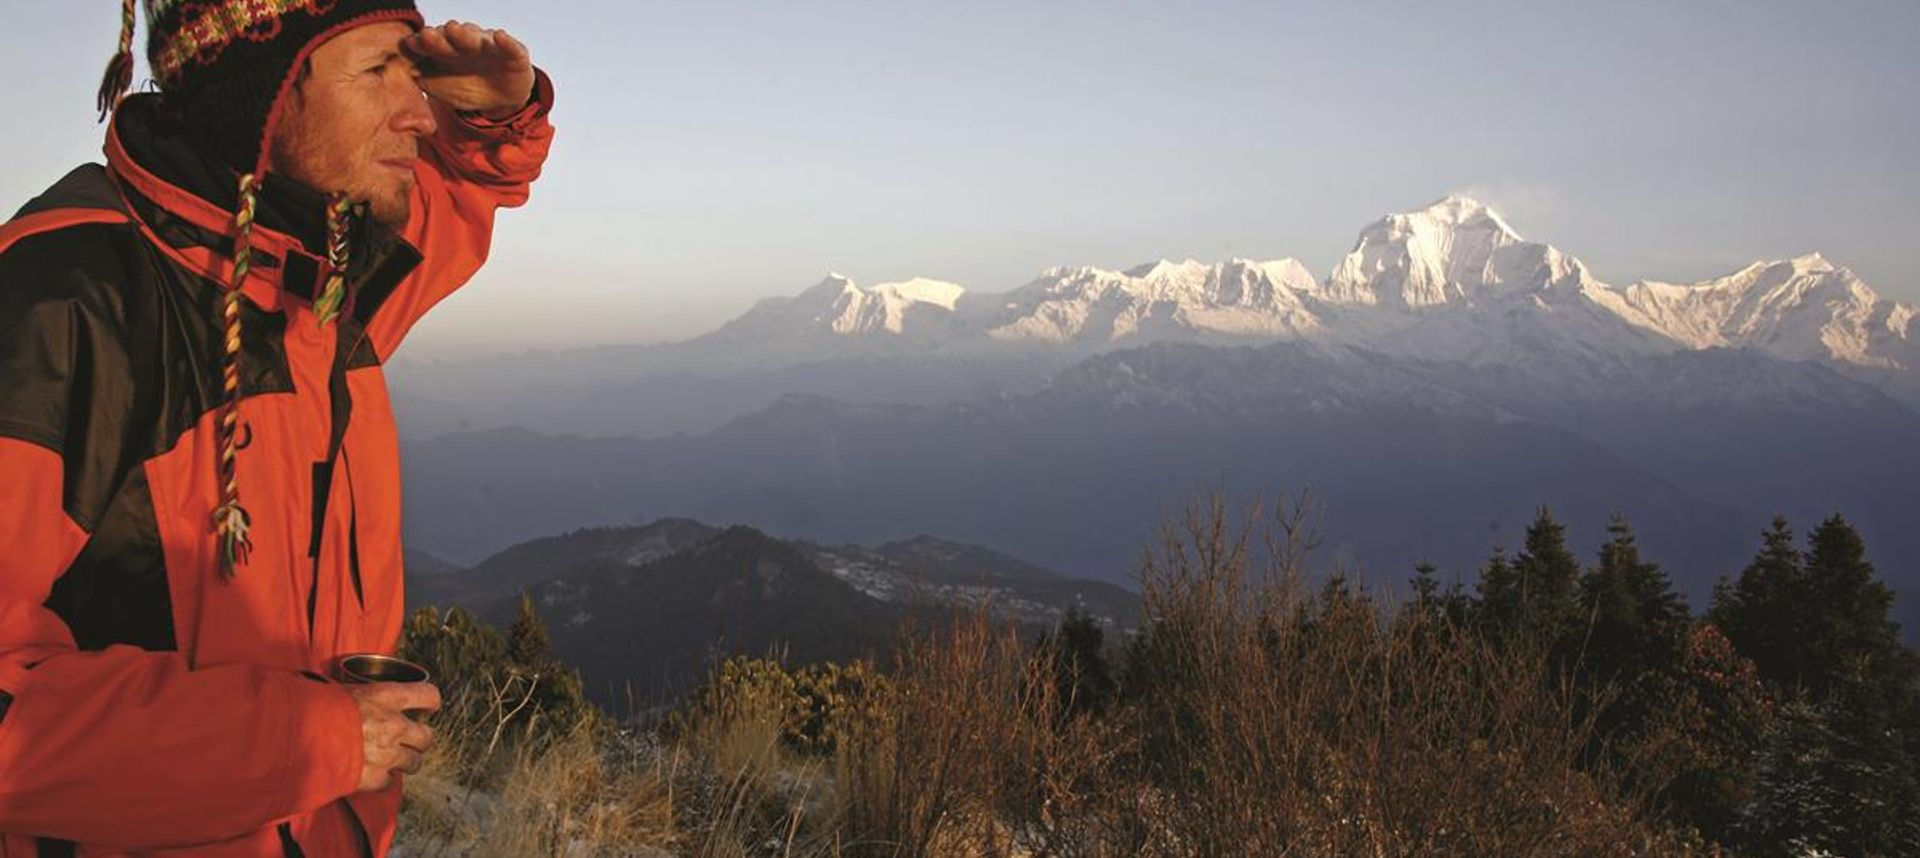 Poon Hill, Annapurna Circuit, Nepal (Dreamstime)